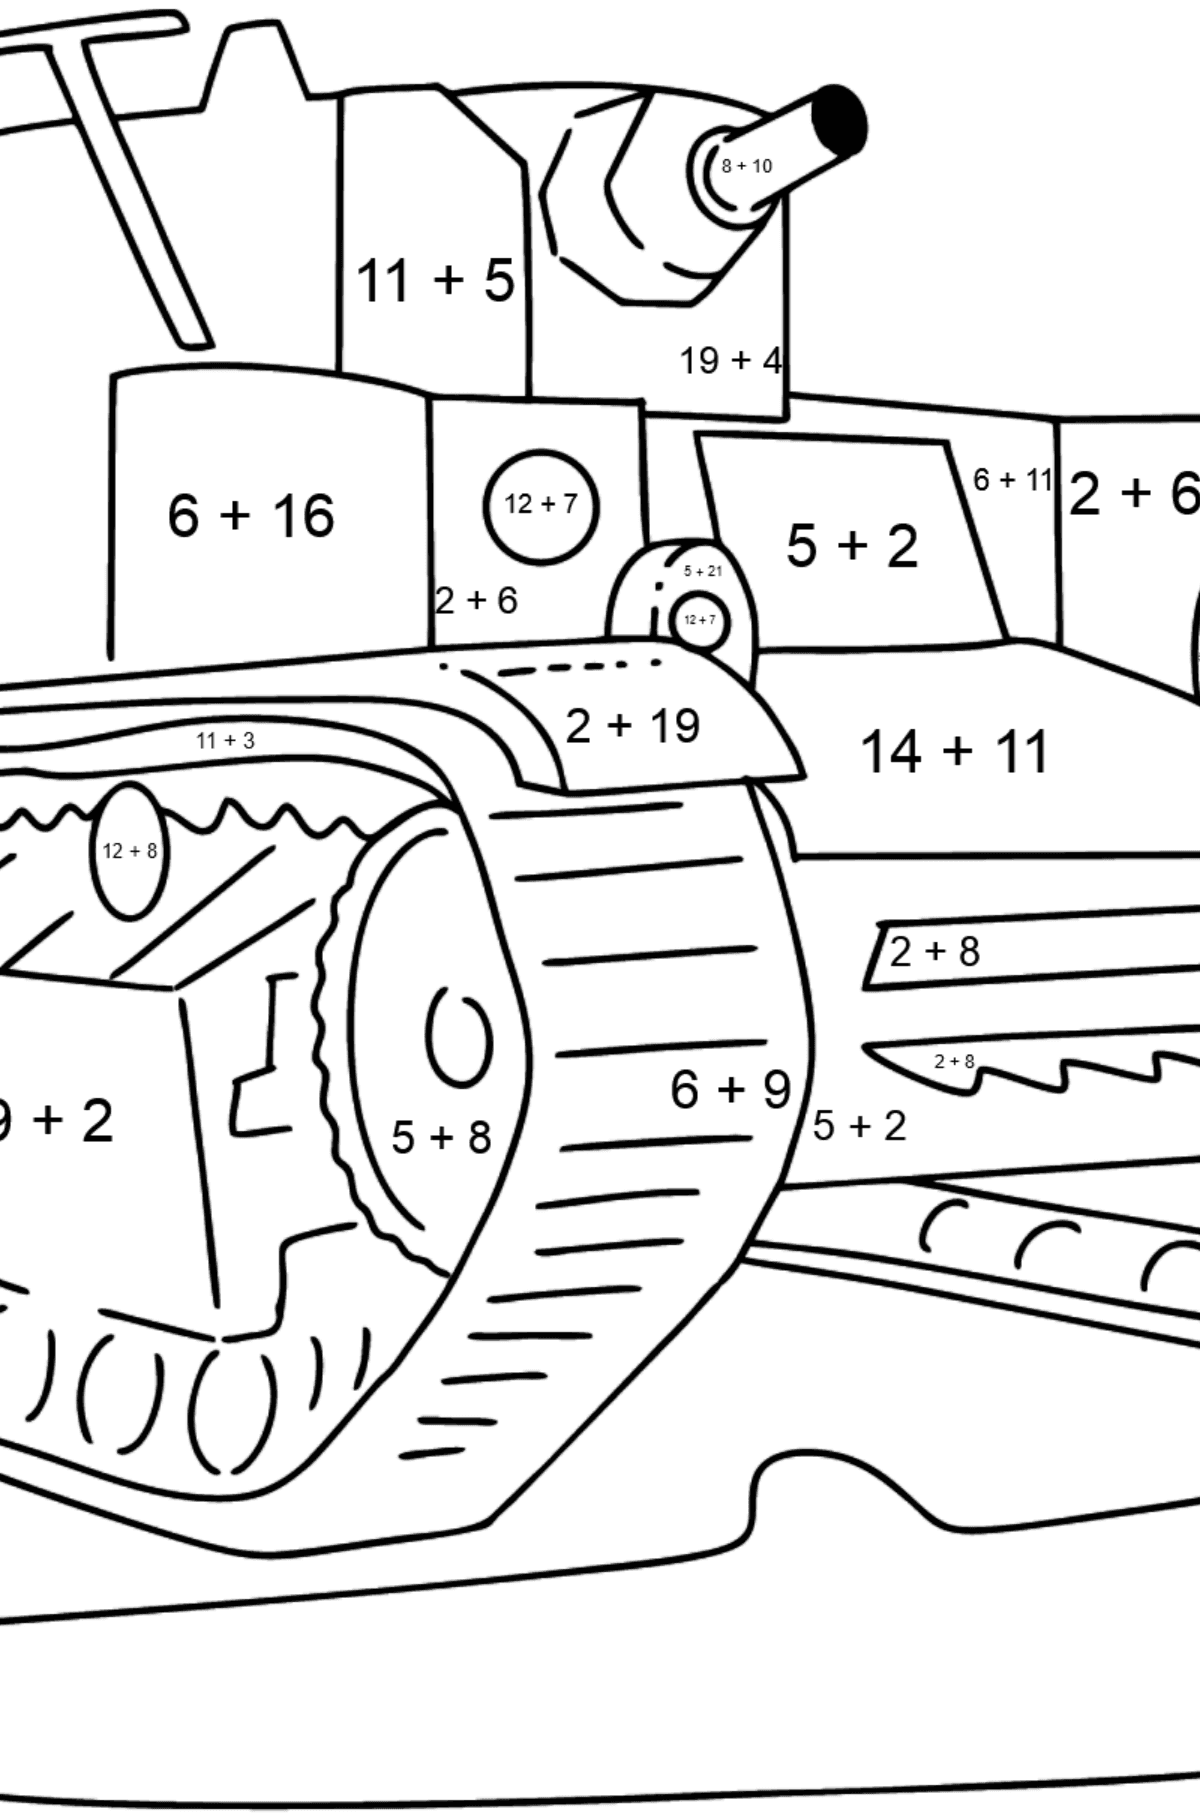 Tank T 28 coloring page - Math Coloring - Addition for Kids